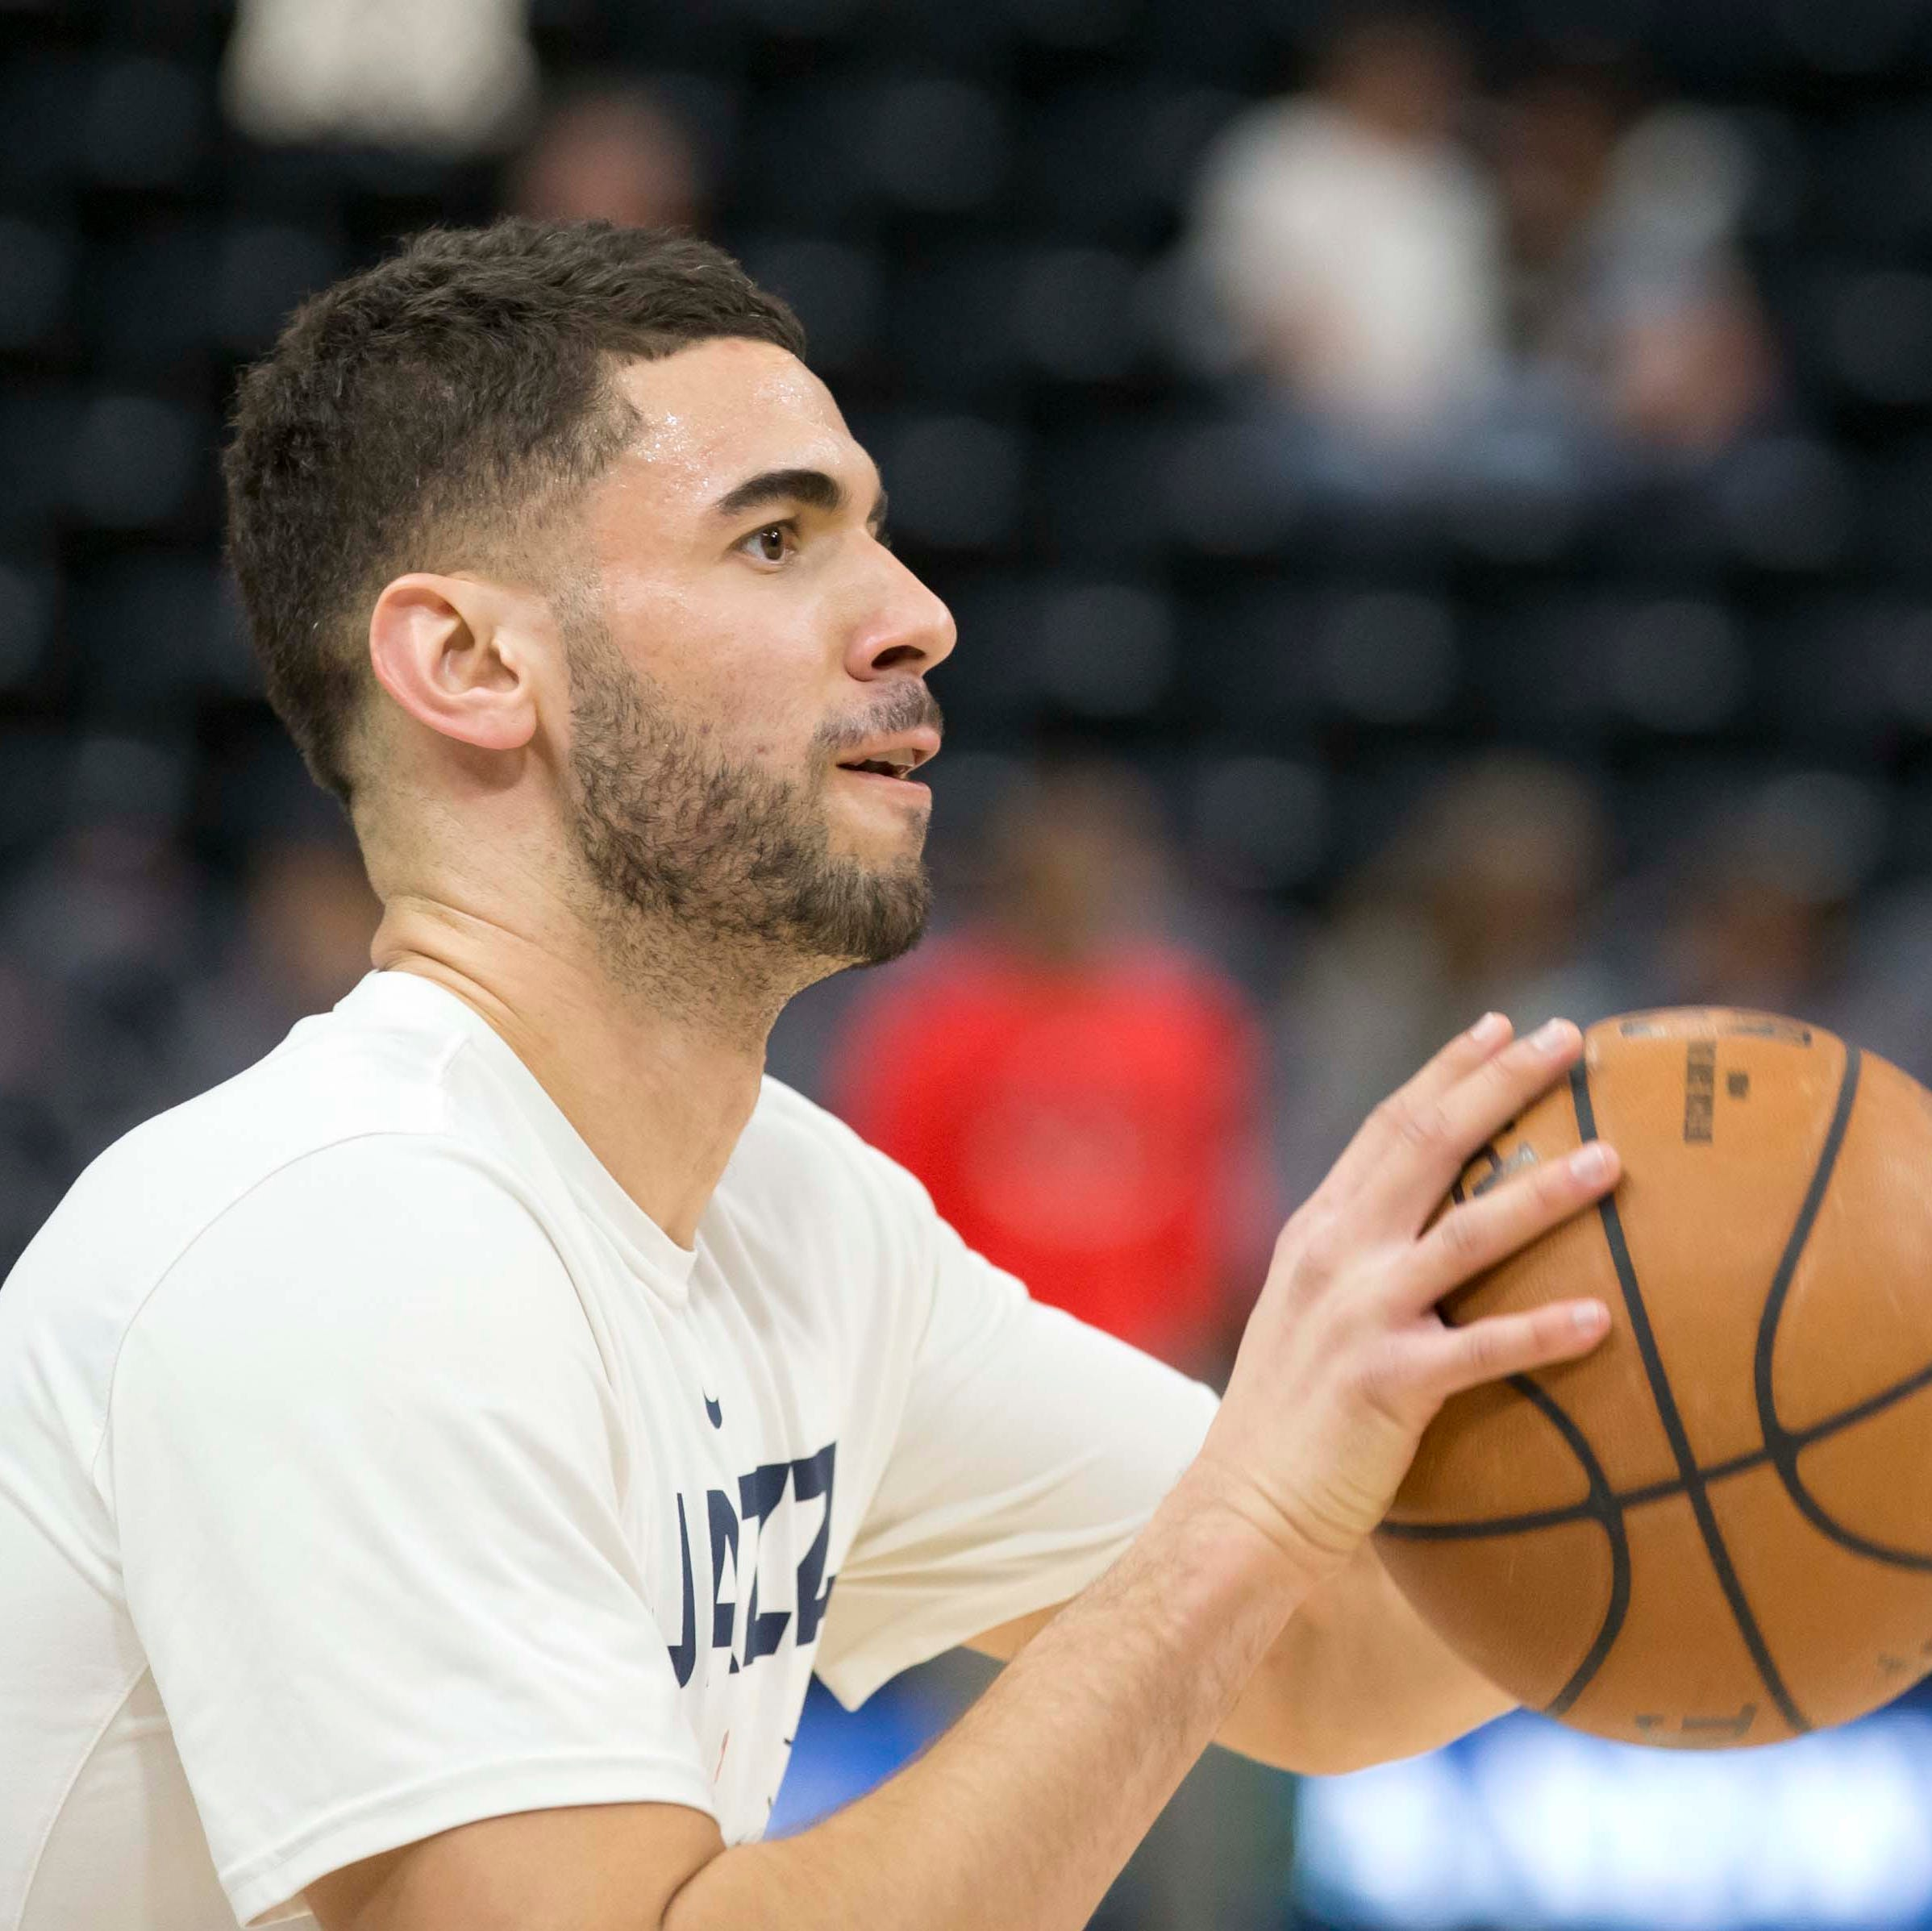 WATCH: Former Iowa State star Georges Niang swats Clippers guard for highlight-reel block